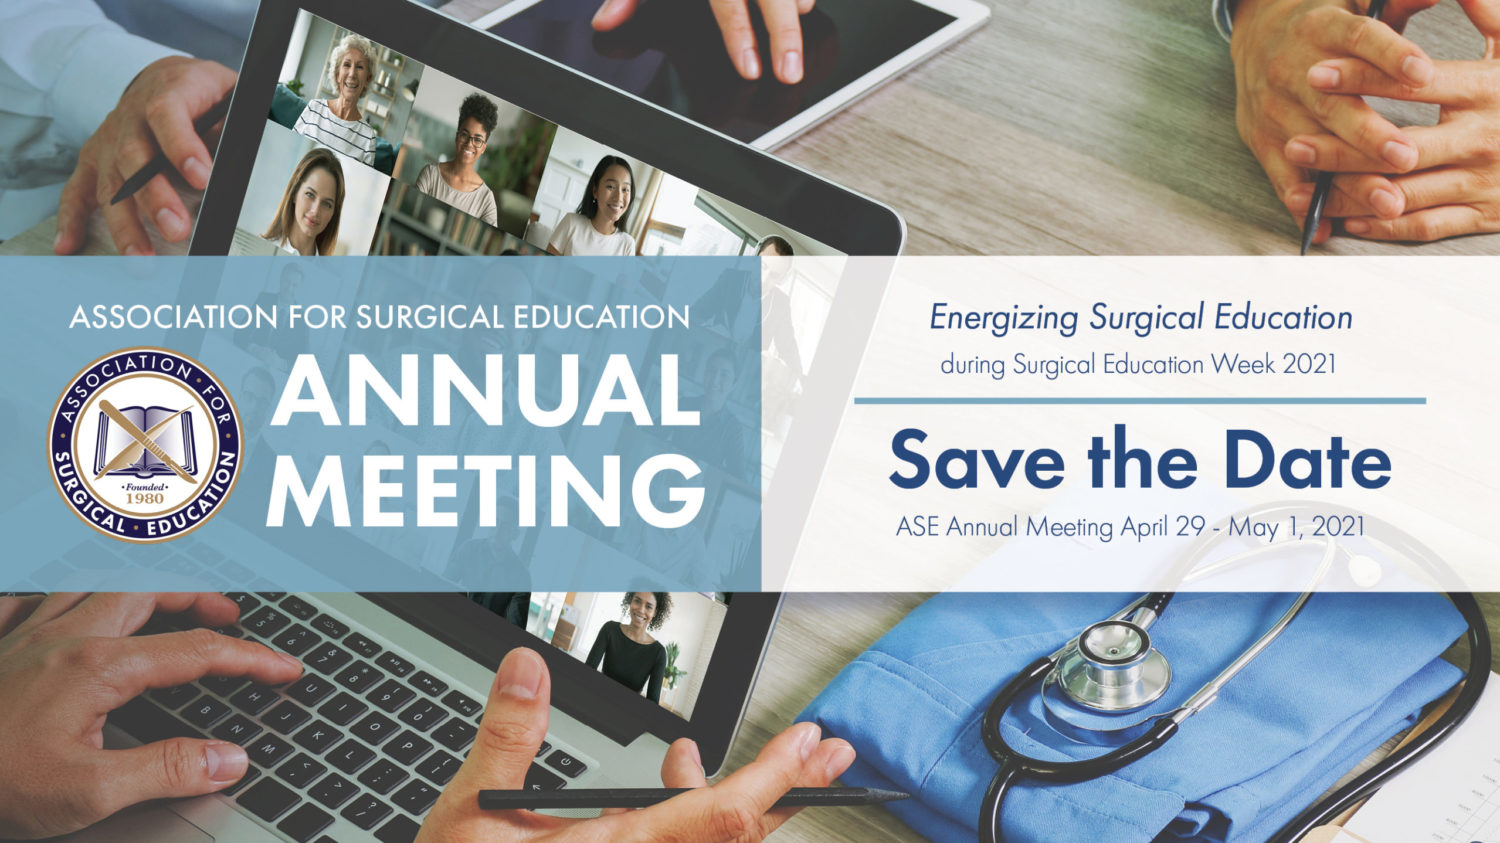 The Association for Surgical Education